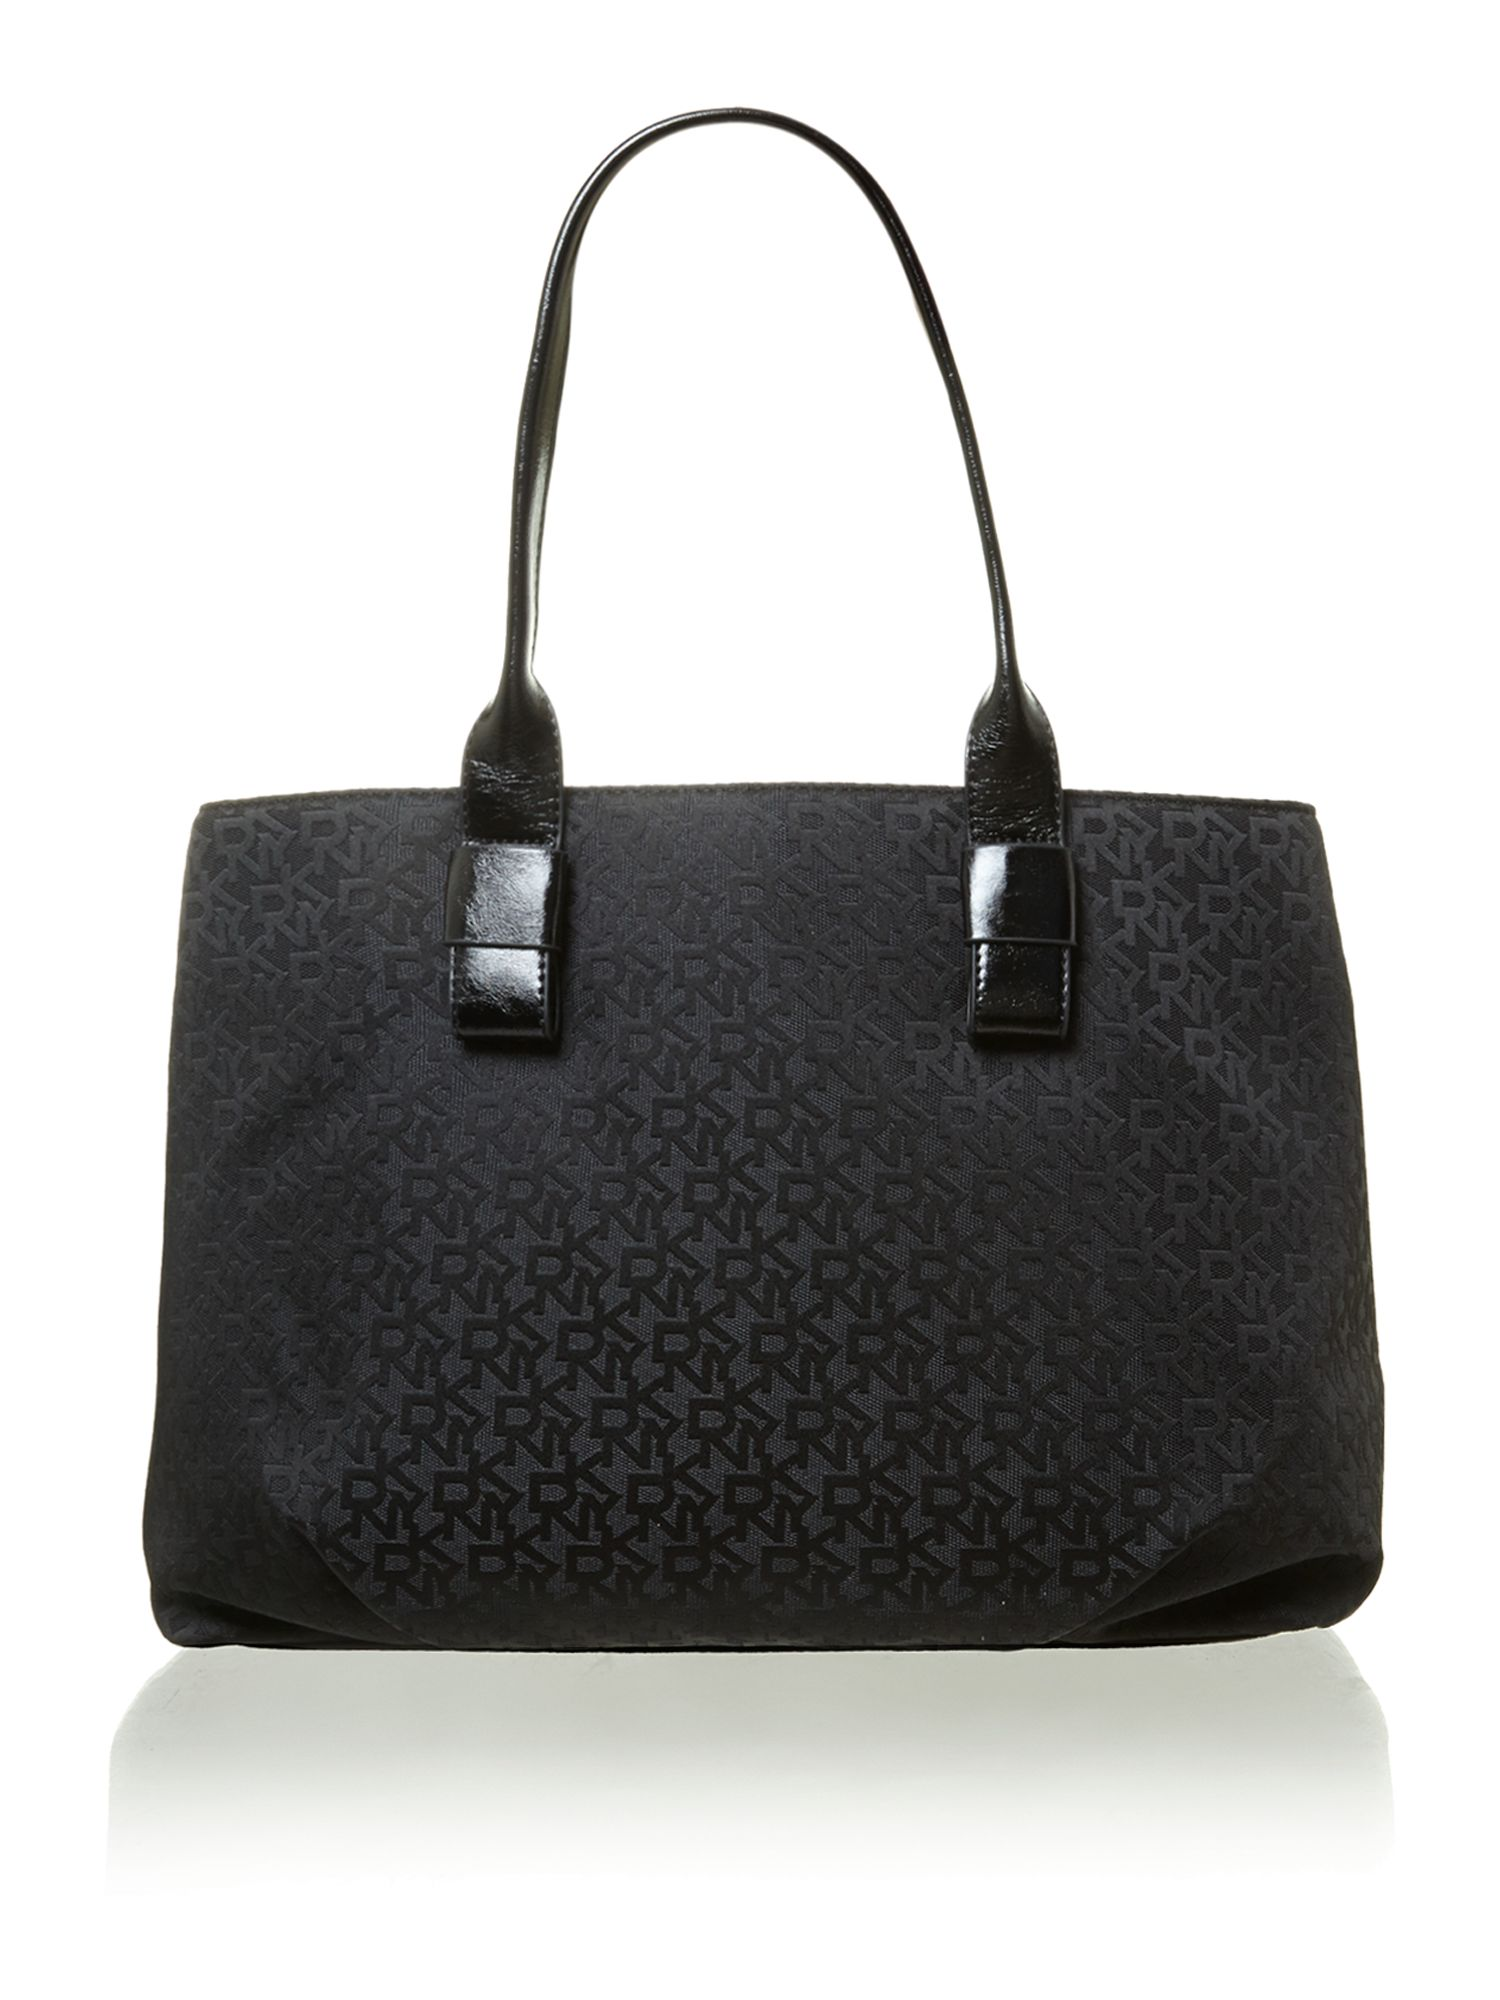 Jaquard black tote bag